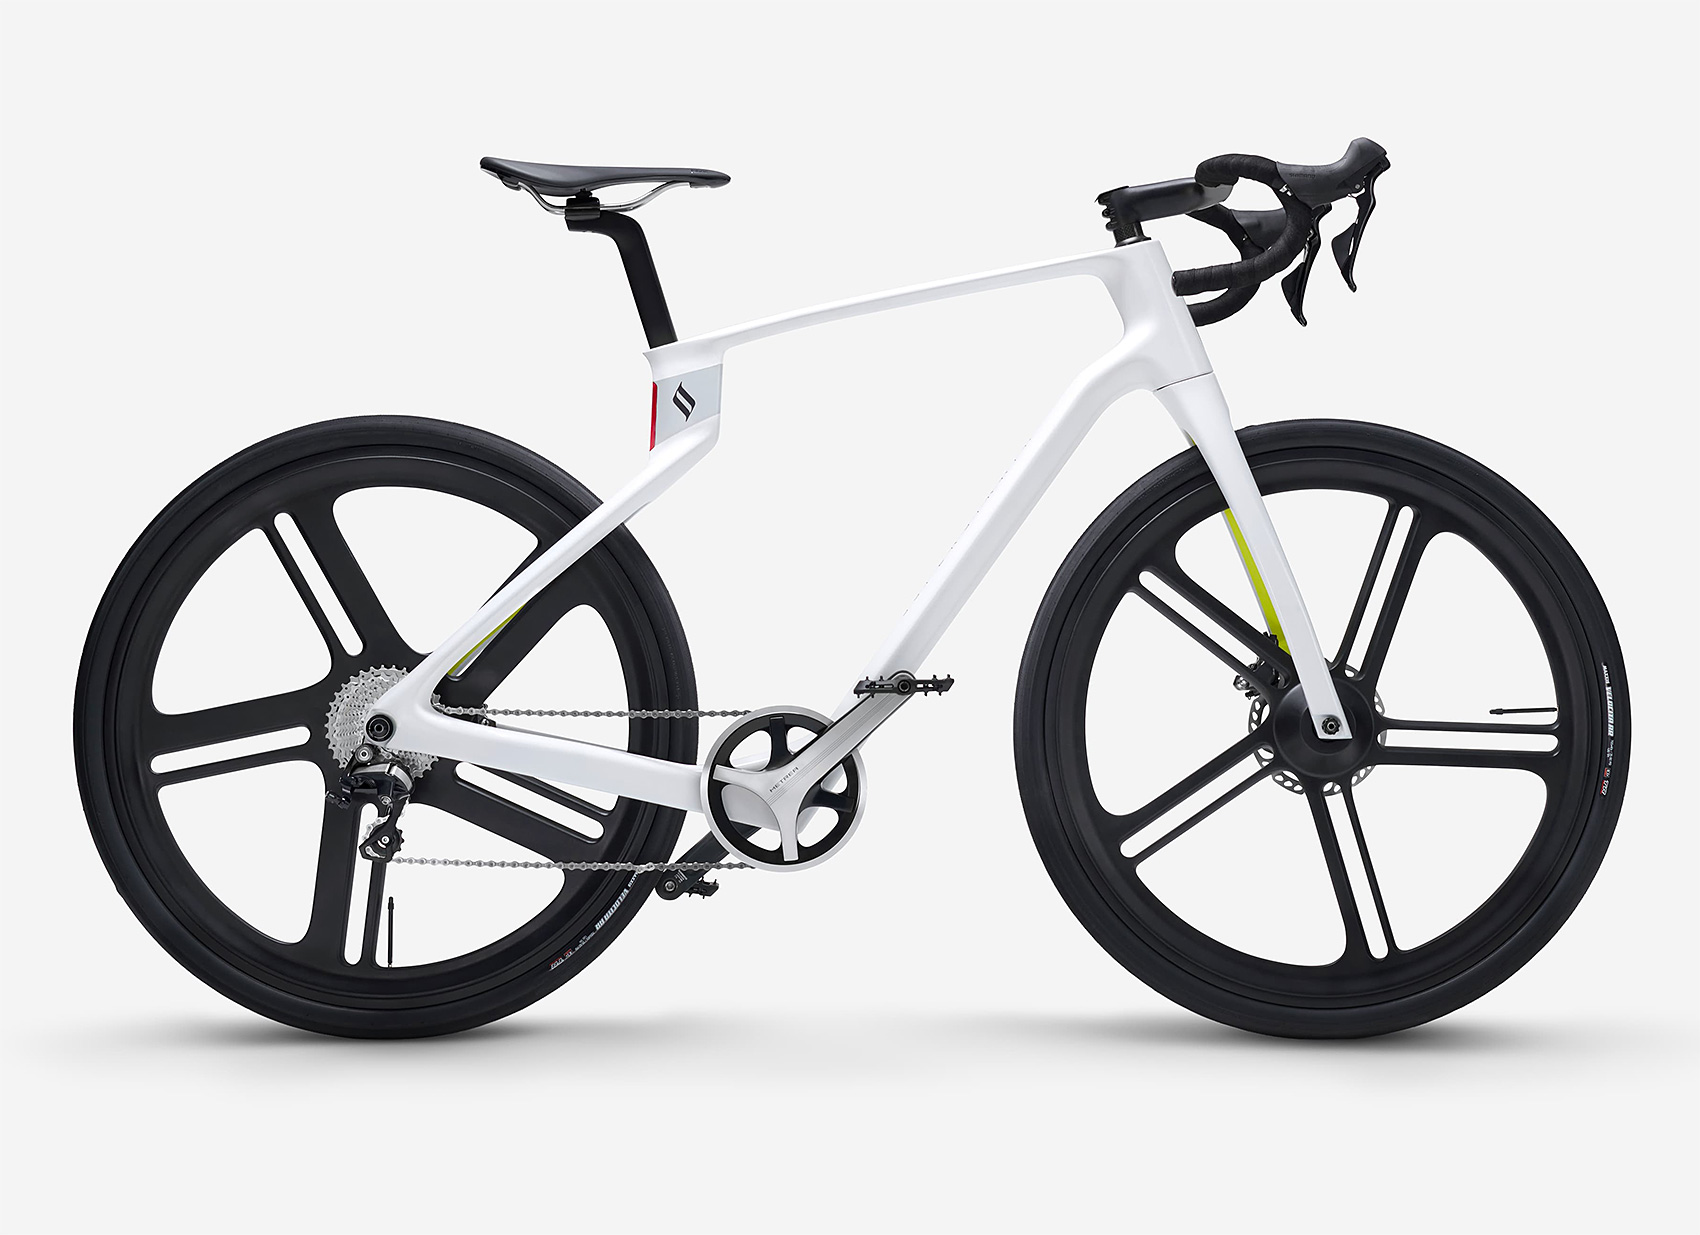 The SuperStrata is a 3-D Printed Unibody Carbon Fiber Bike at werd.com